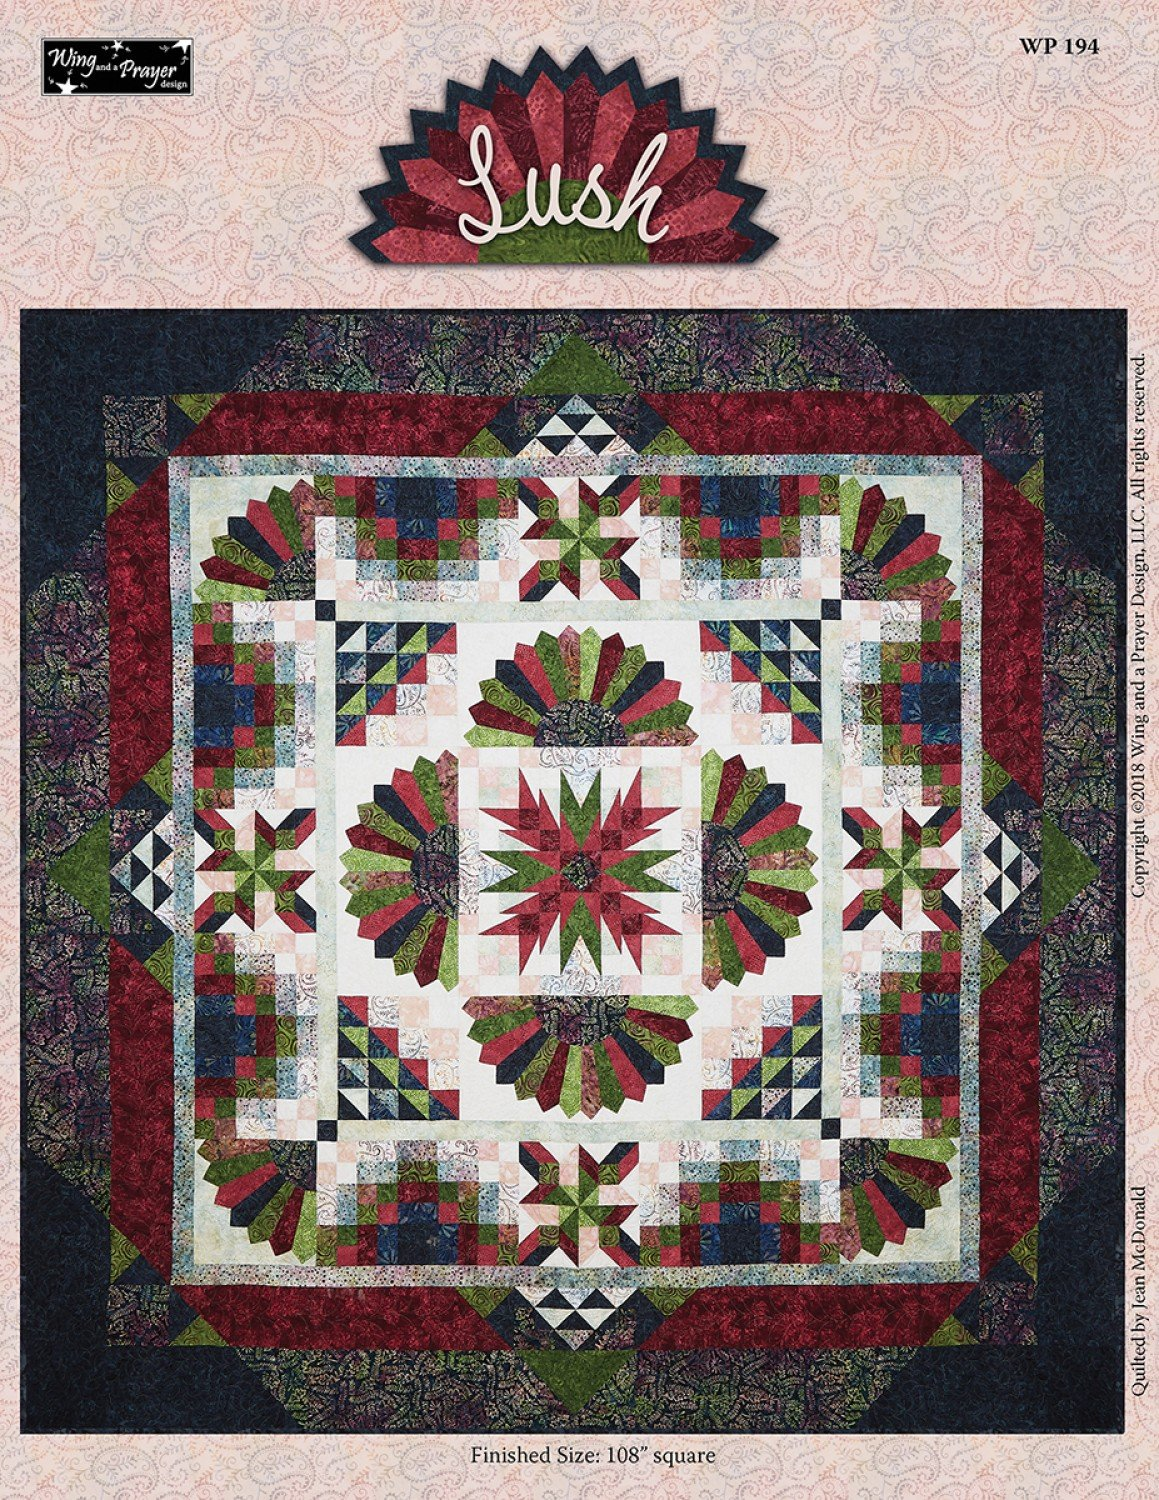 Lush Quilt Kit with Pattern 108 x 108